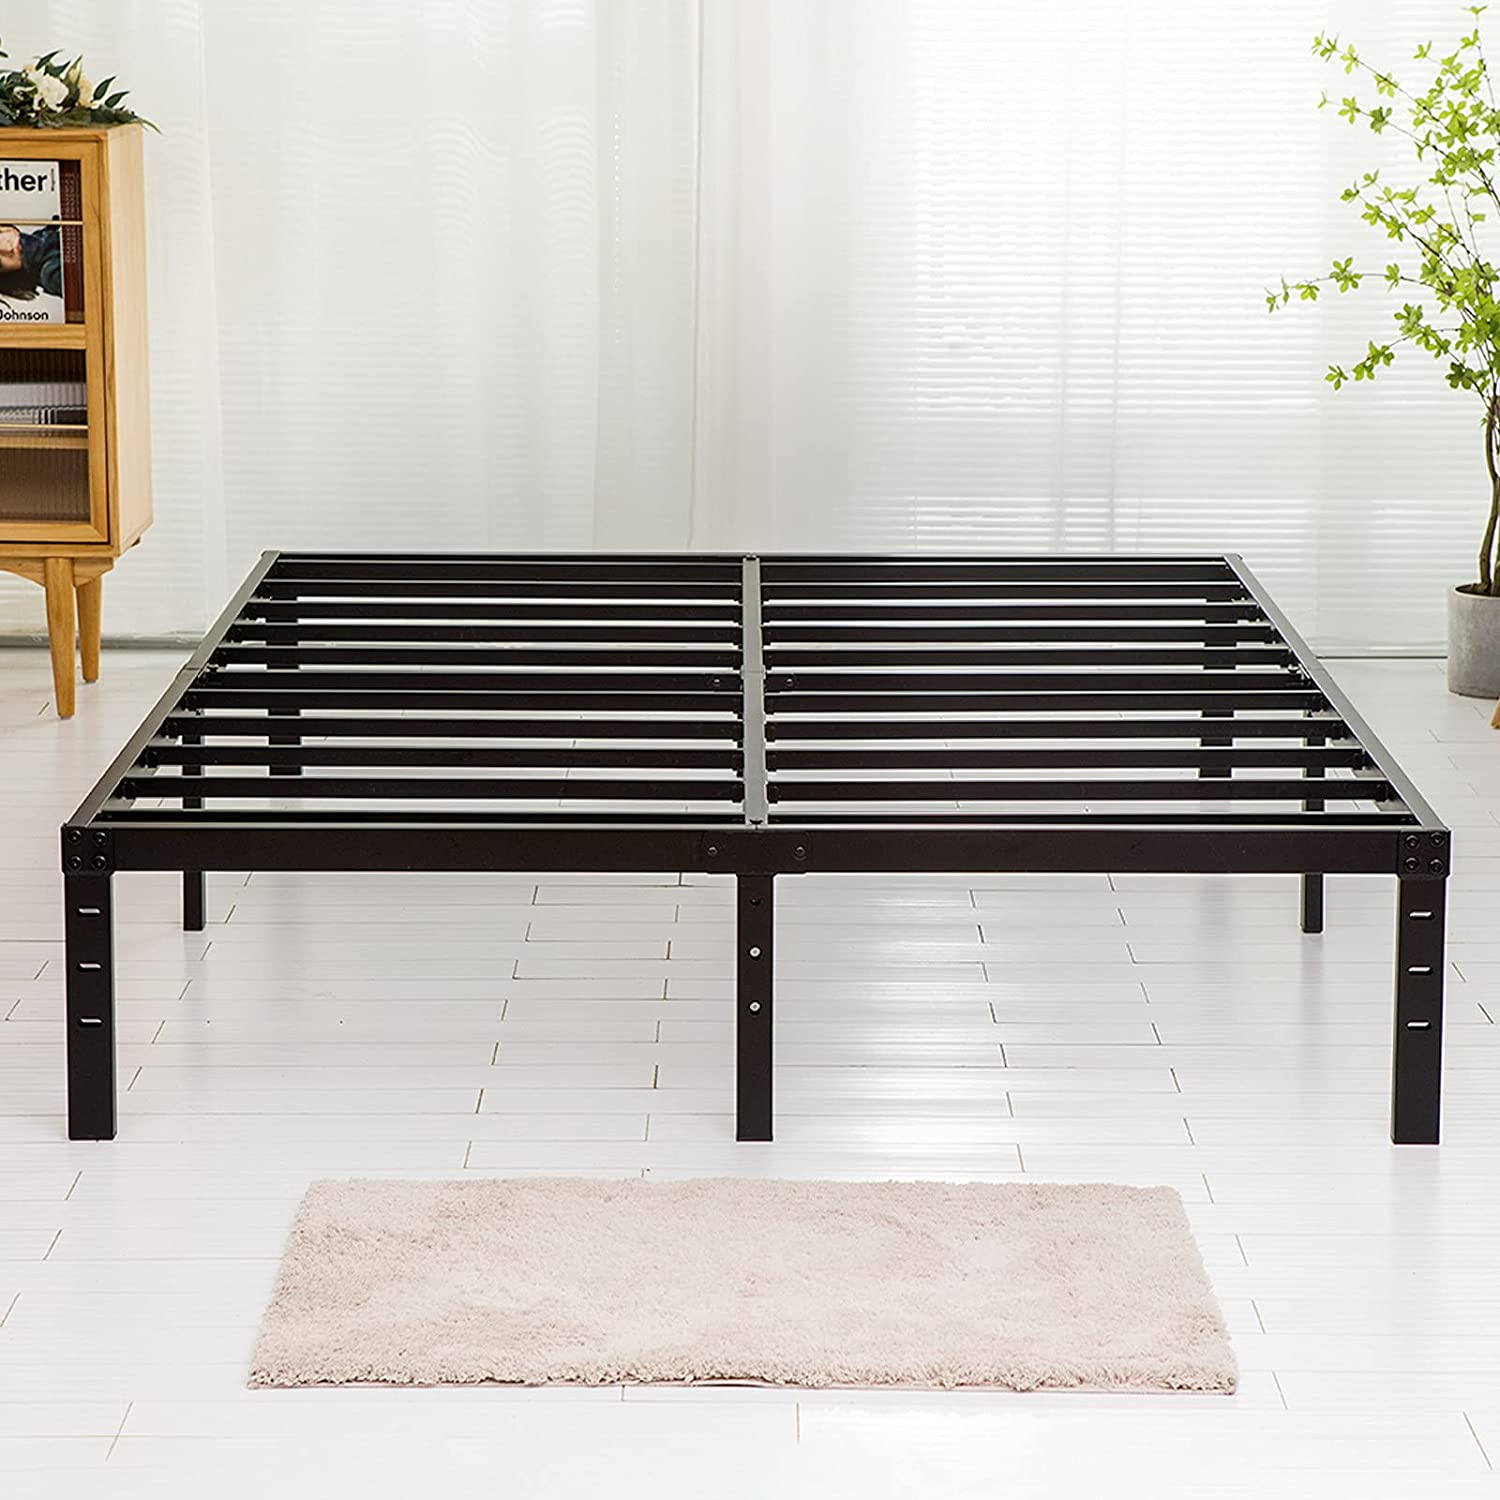 Wulanos Queen Size Bed Frame with Steel Slats Support, Sturdy and Durable, No Box Spring Needed, 14 Inch High 3500lbs Heavy Duty Metal Platform Frames with Storage, Noise-Free, Black